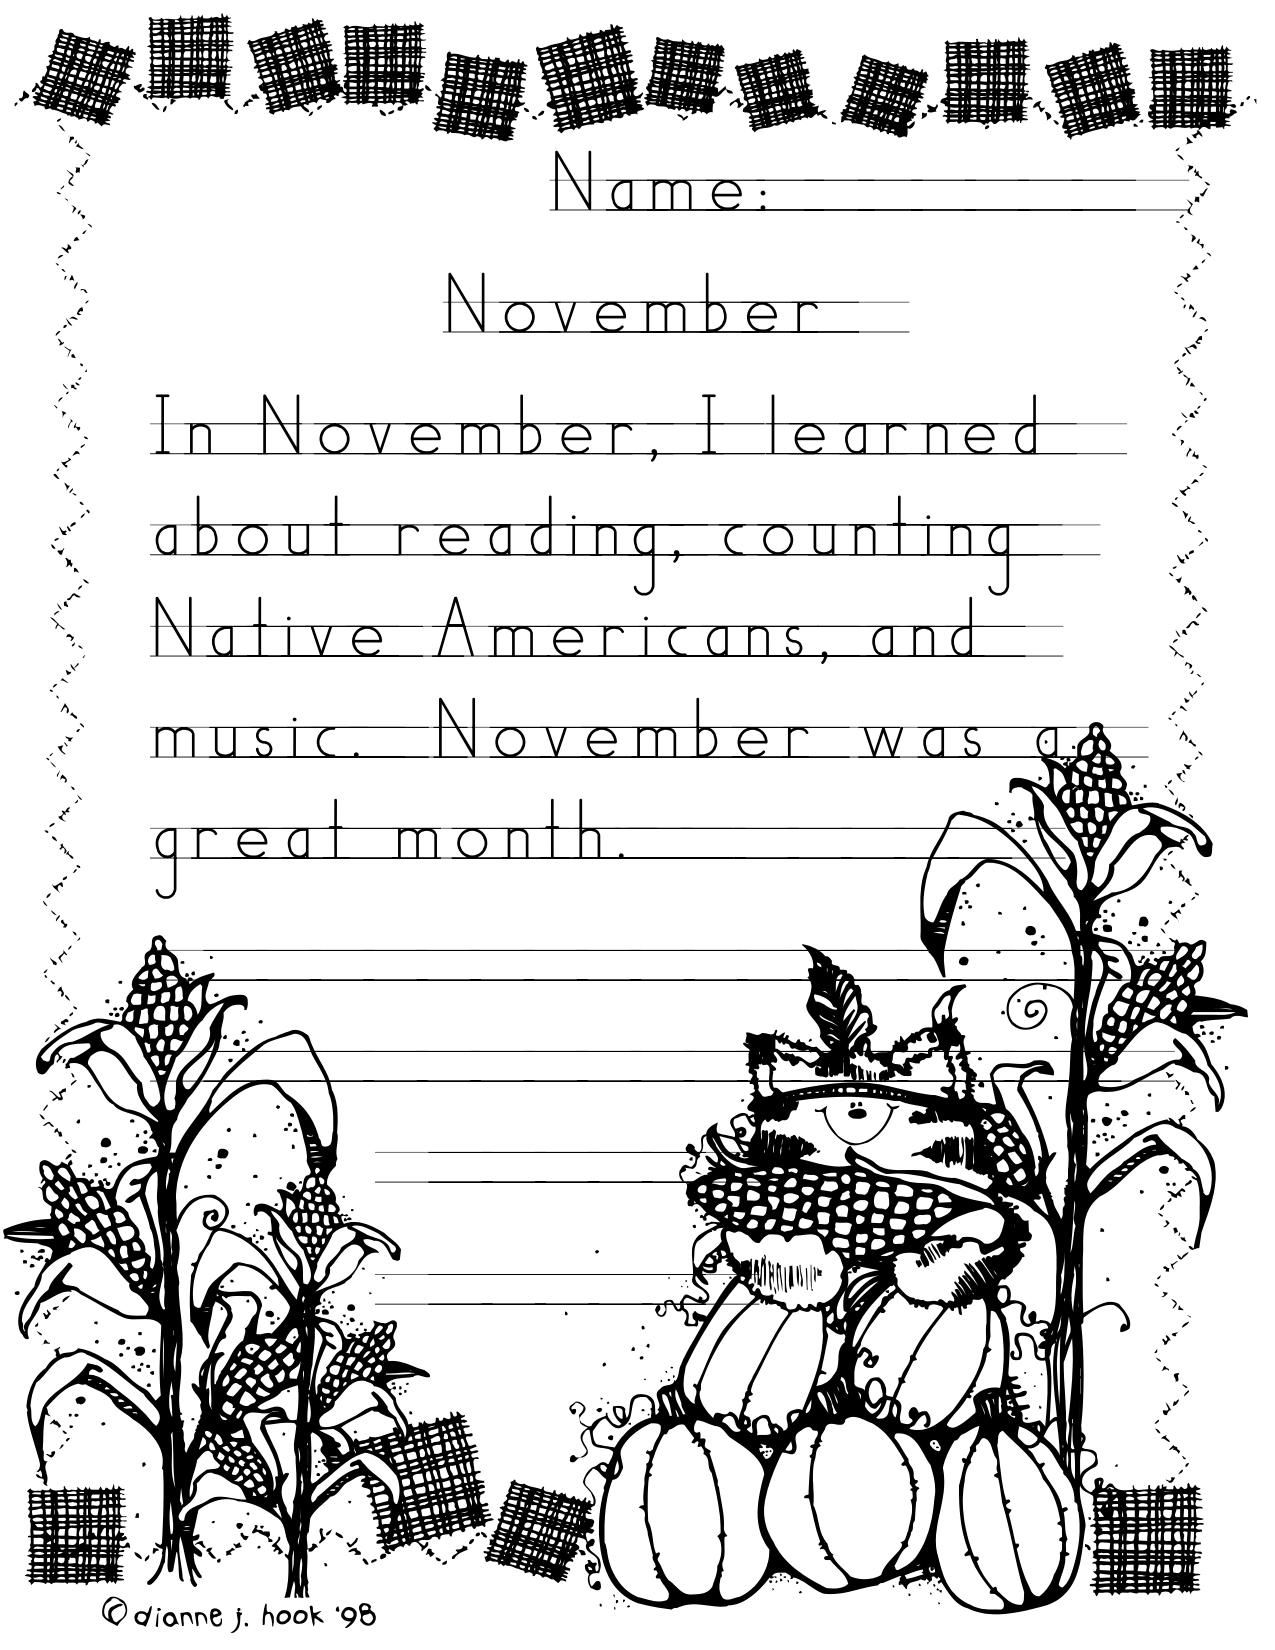 Adorable Thanksgiving Writing Paper For Kinder Or First Graders Love The Handwriting Without